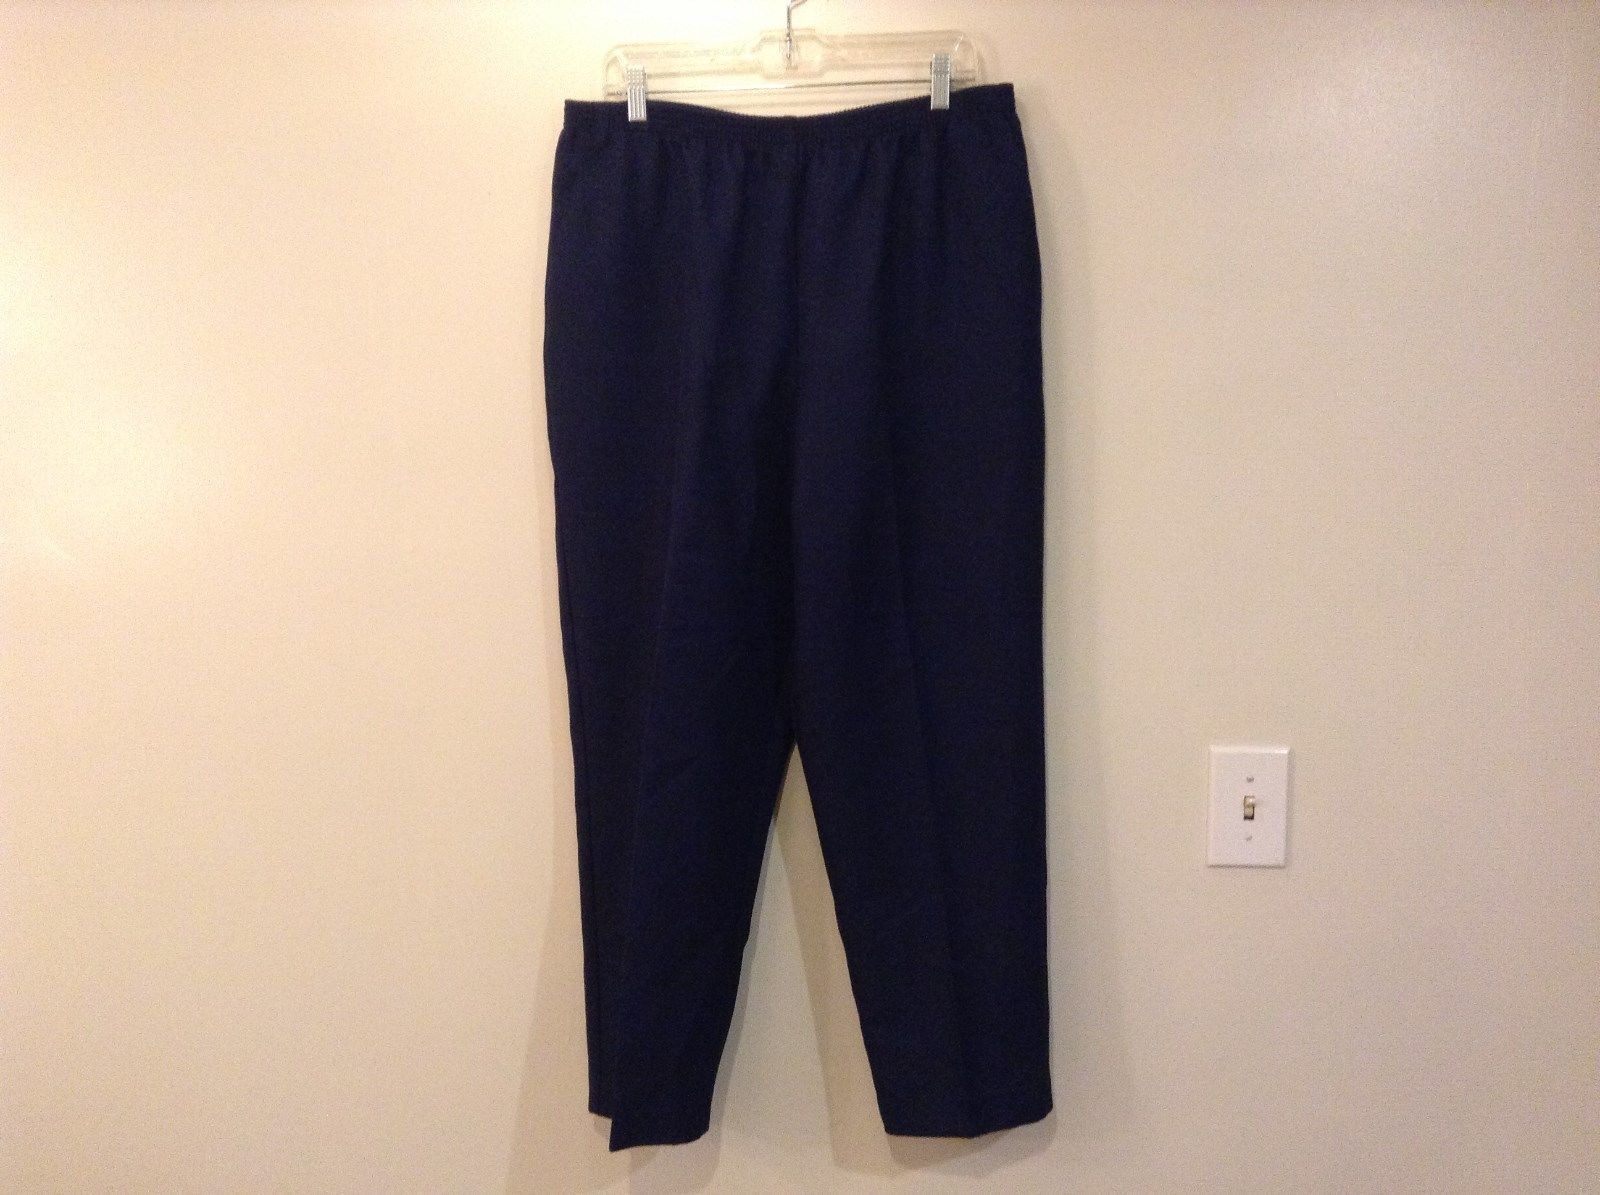 Dark Blue Sweatpants Alfred Dunner Size 18 Comfort Elastic Waistband Pockets